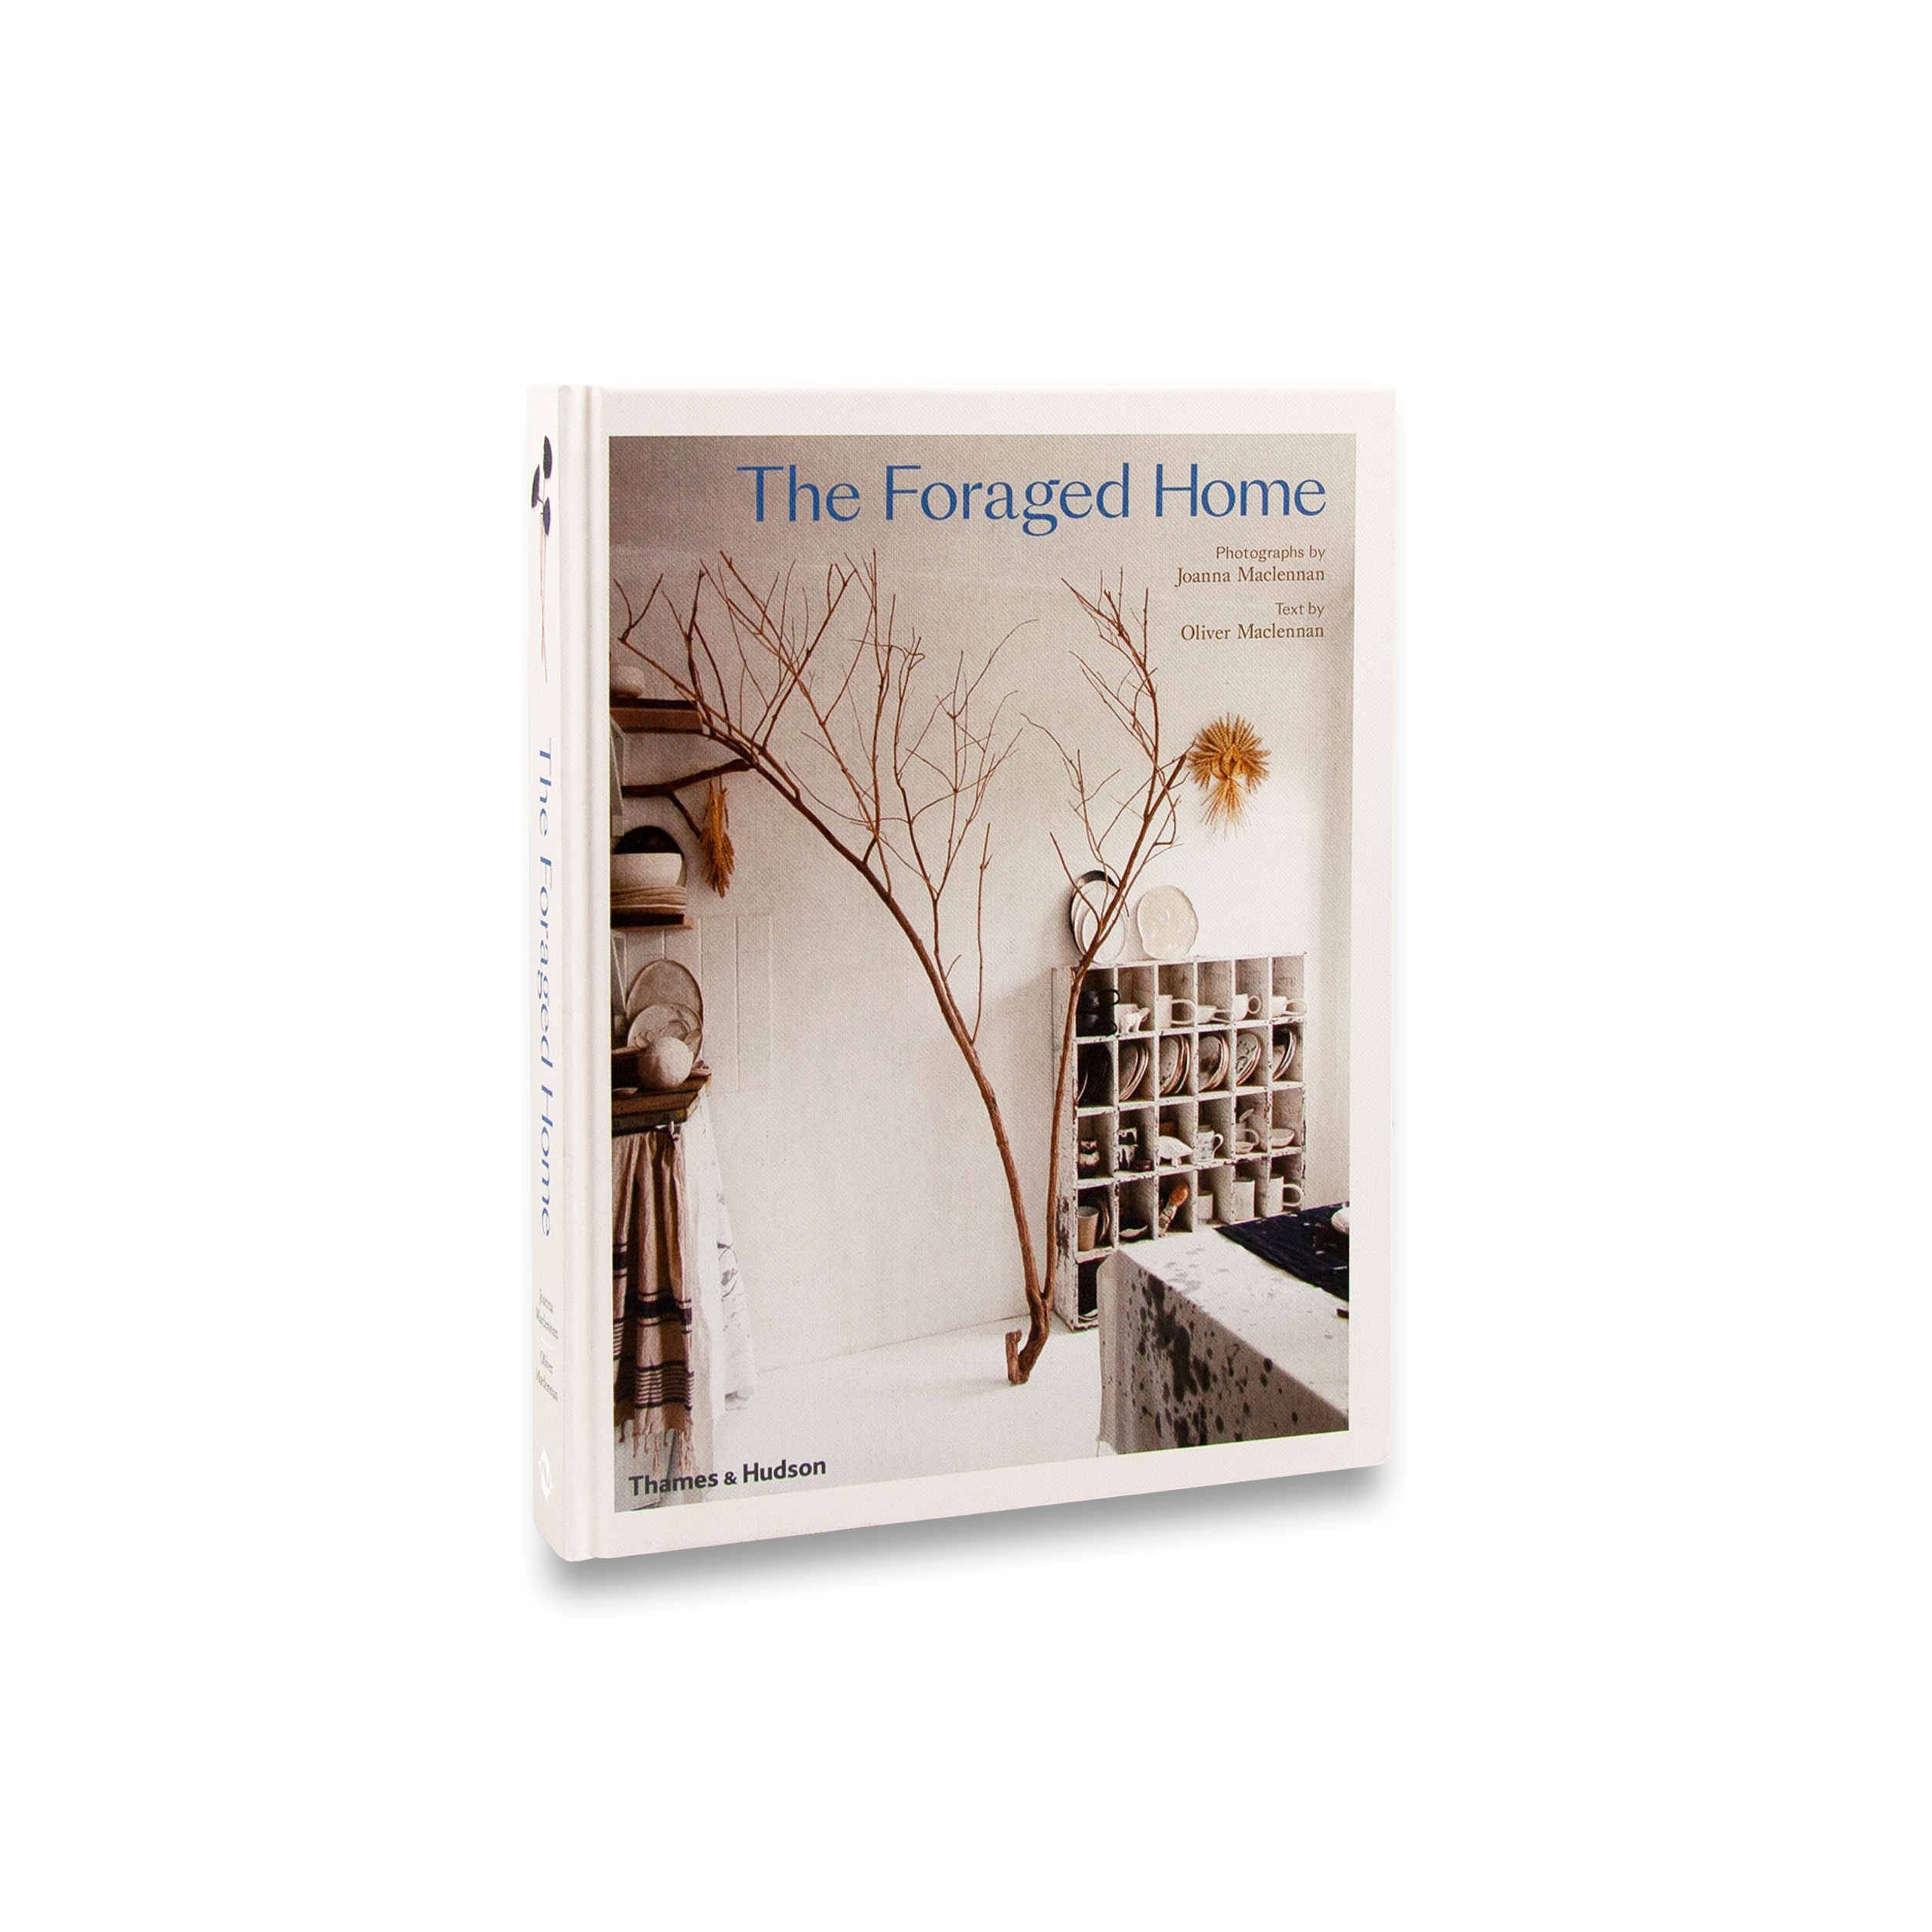 9780500021873_The-Foraged-Home.png